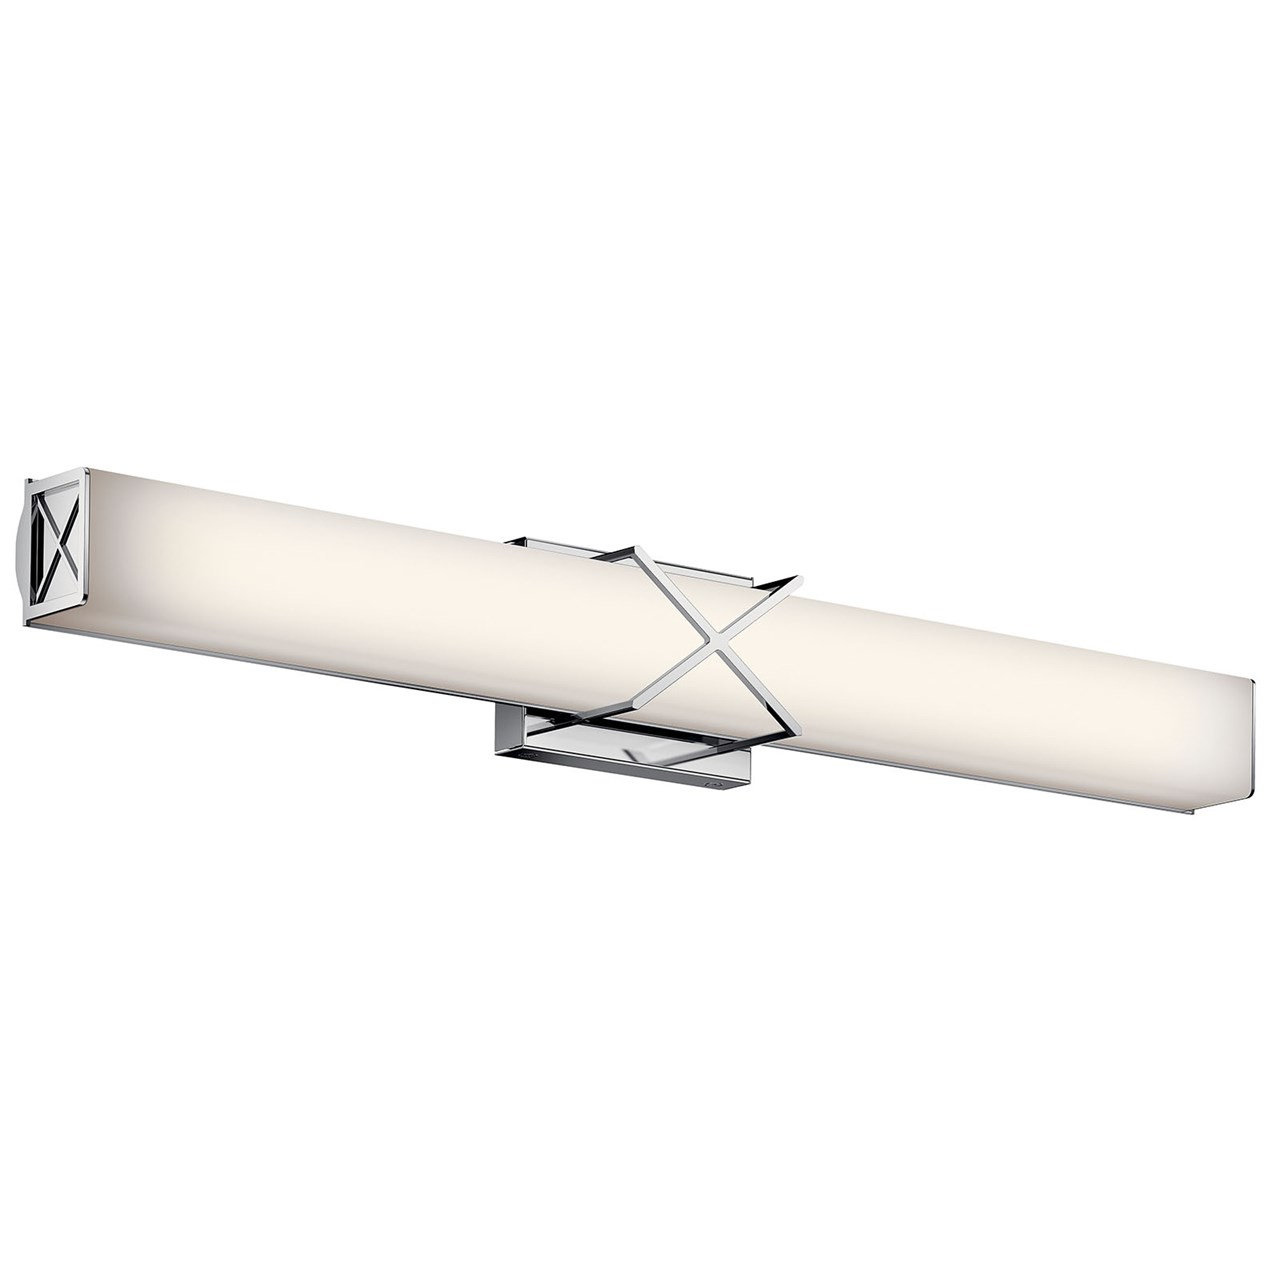 "Trinsic 32"" LED Vanity Light Chrome"